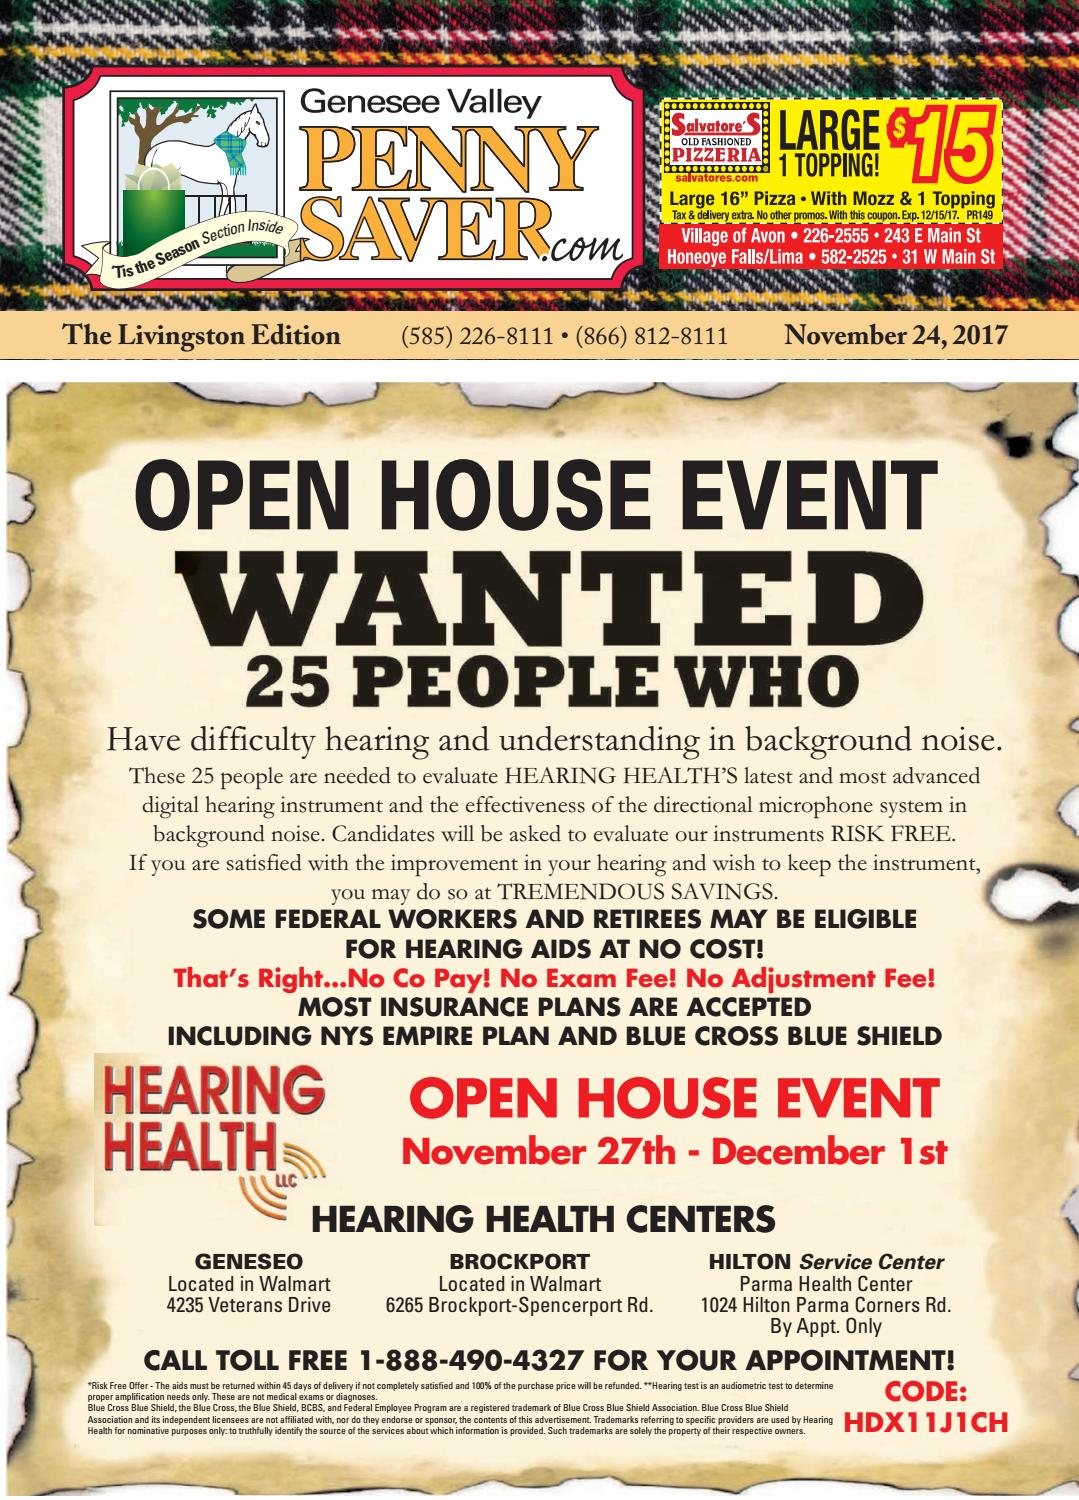 Livingston Edition of The Genesee Valley Penny Saver 11/24/17 by